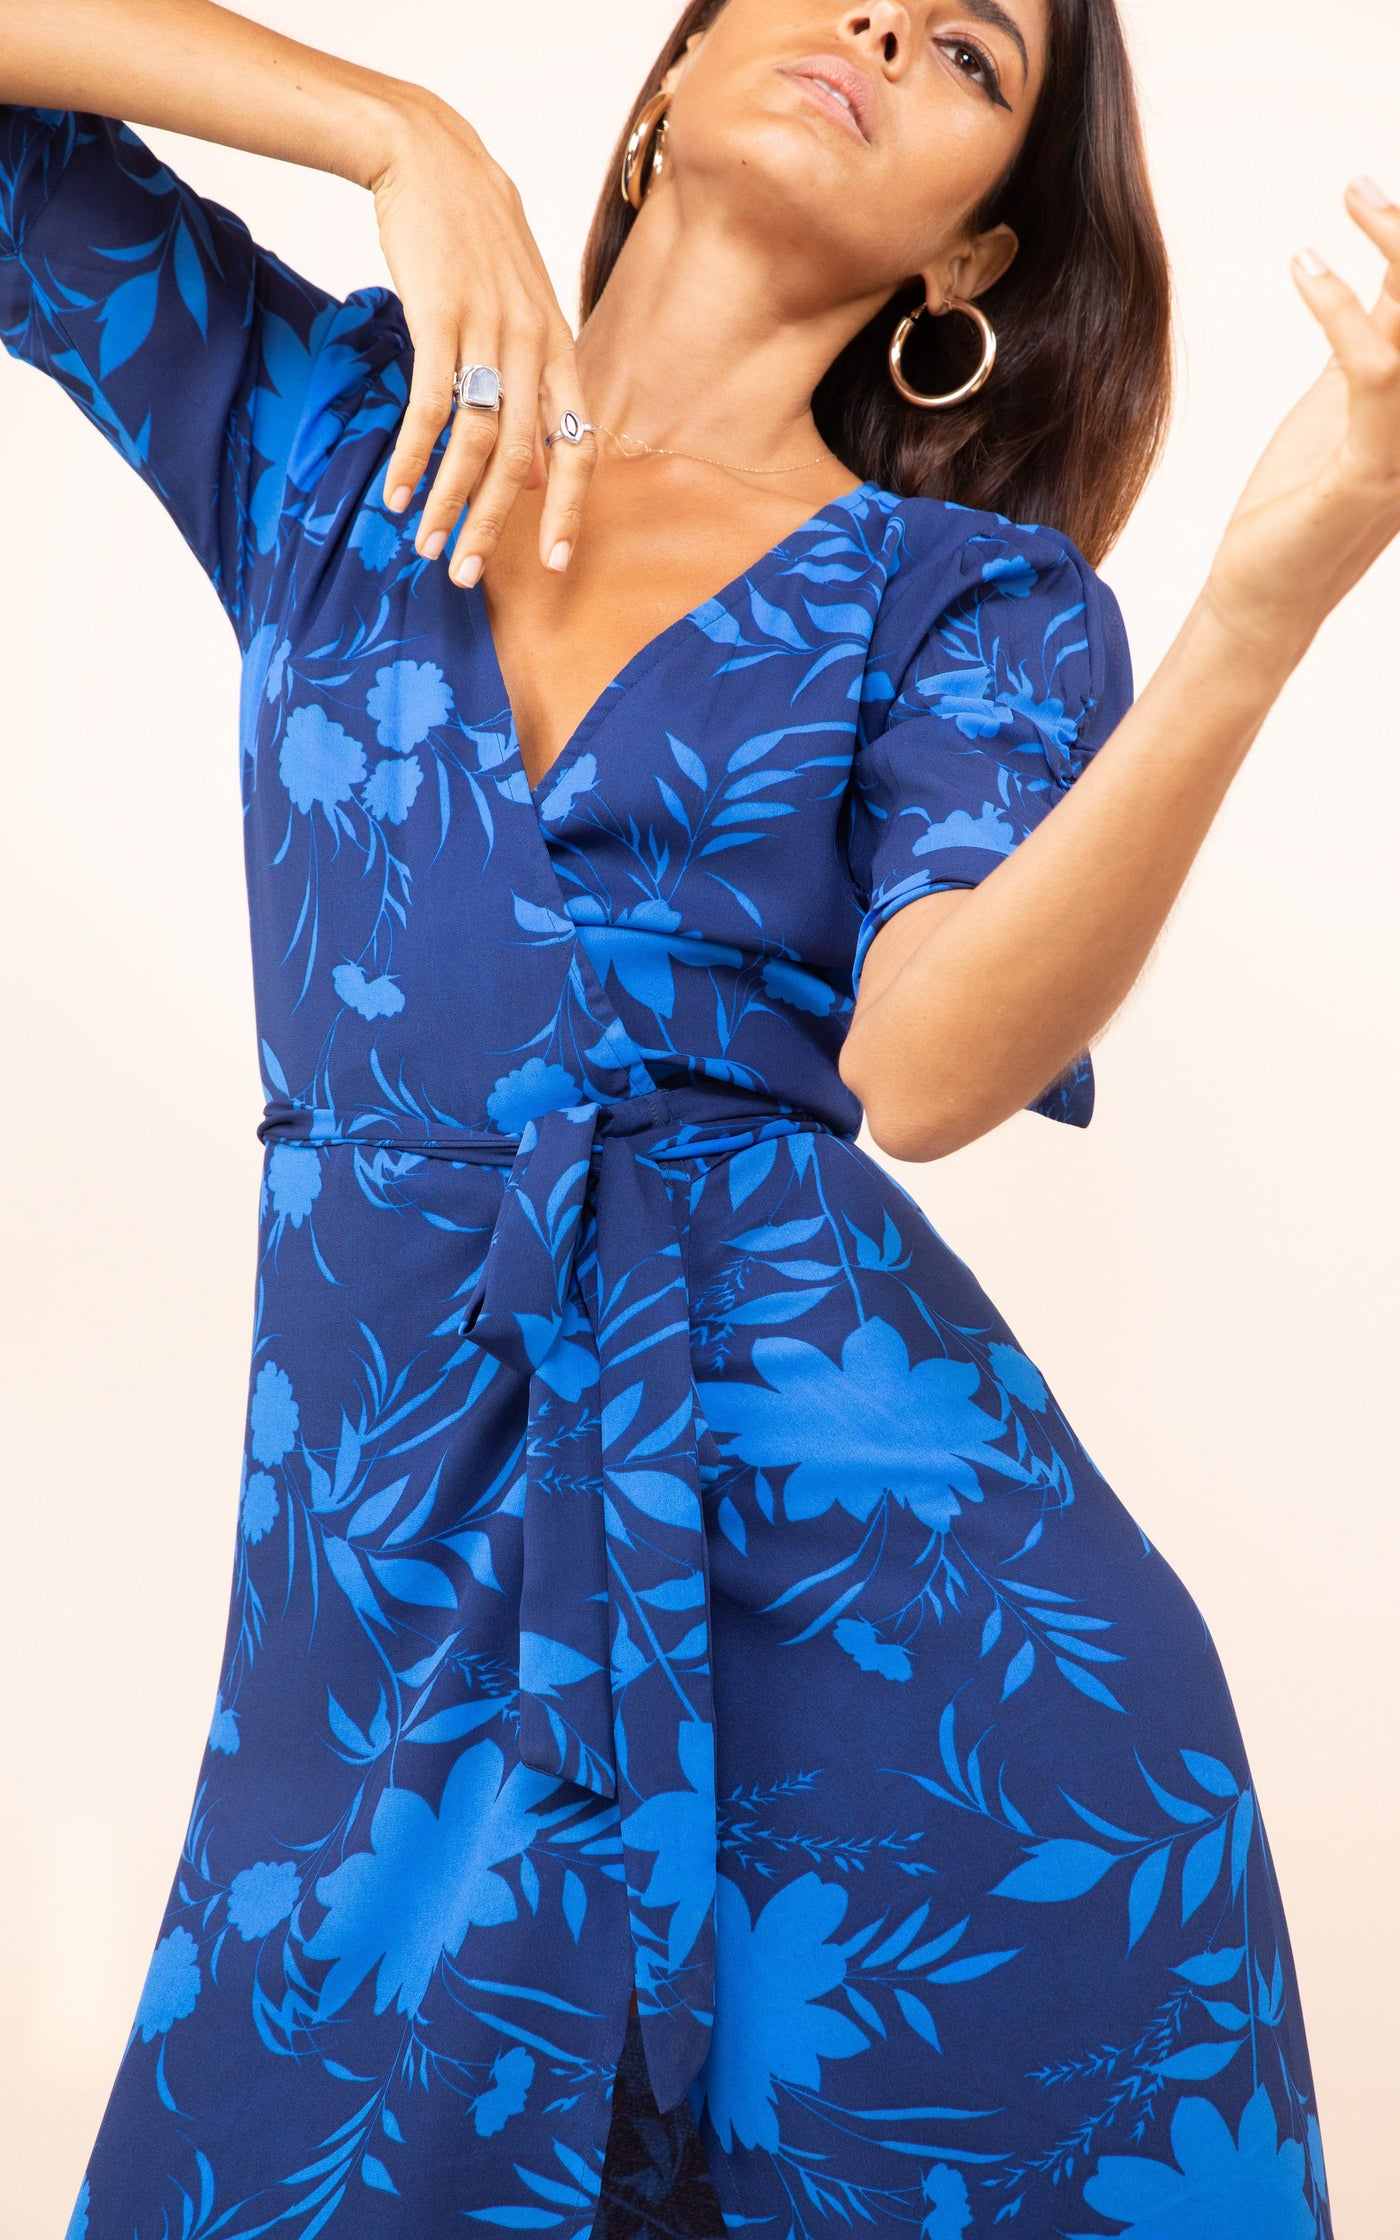 Dancing Leopard model faces forward wearing Olivera Midi Dress in blue floral print